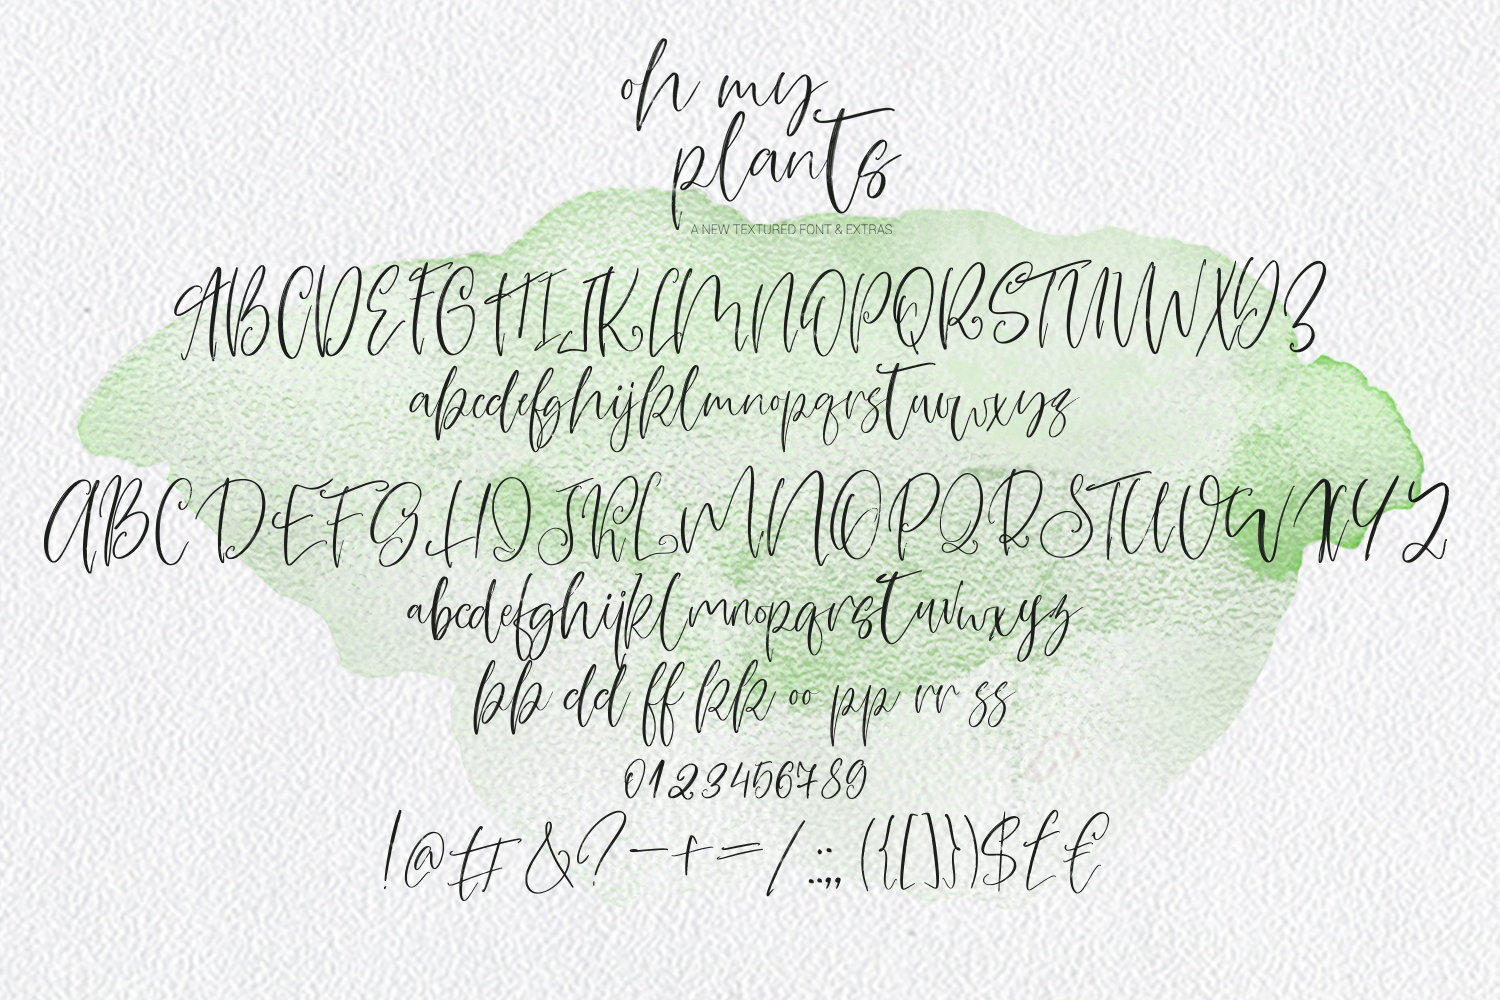 Oh My Plants Textured Font & Doodles example image 6